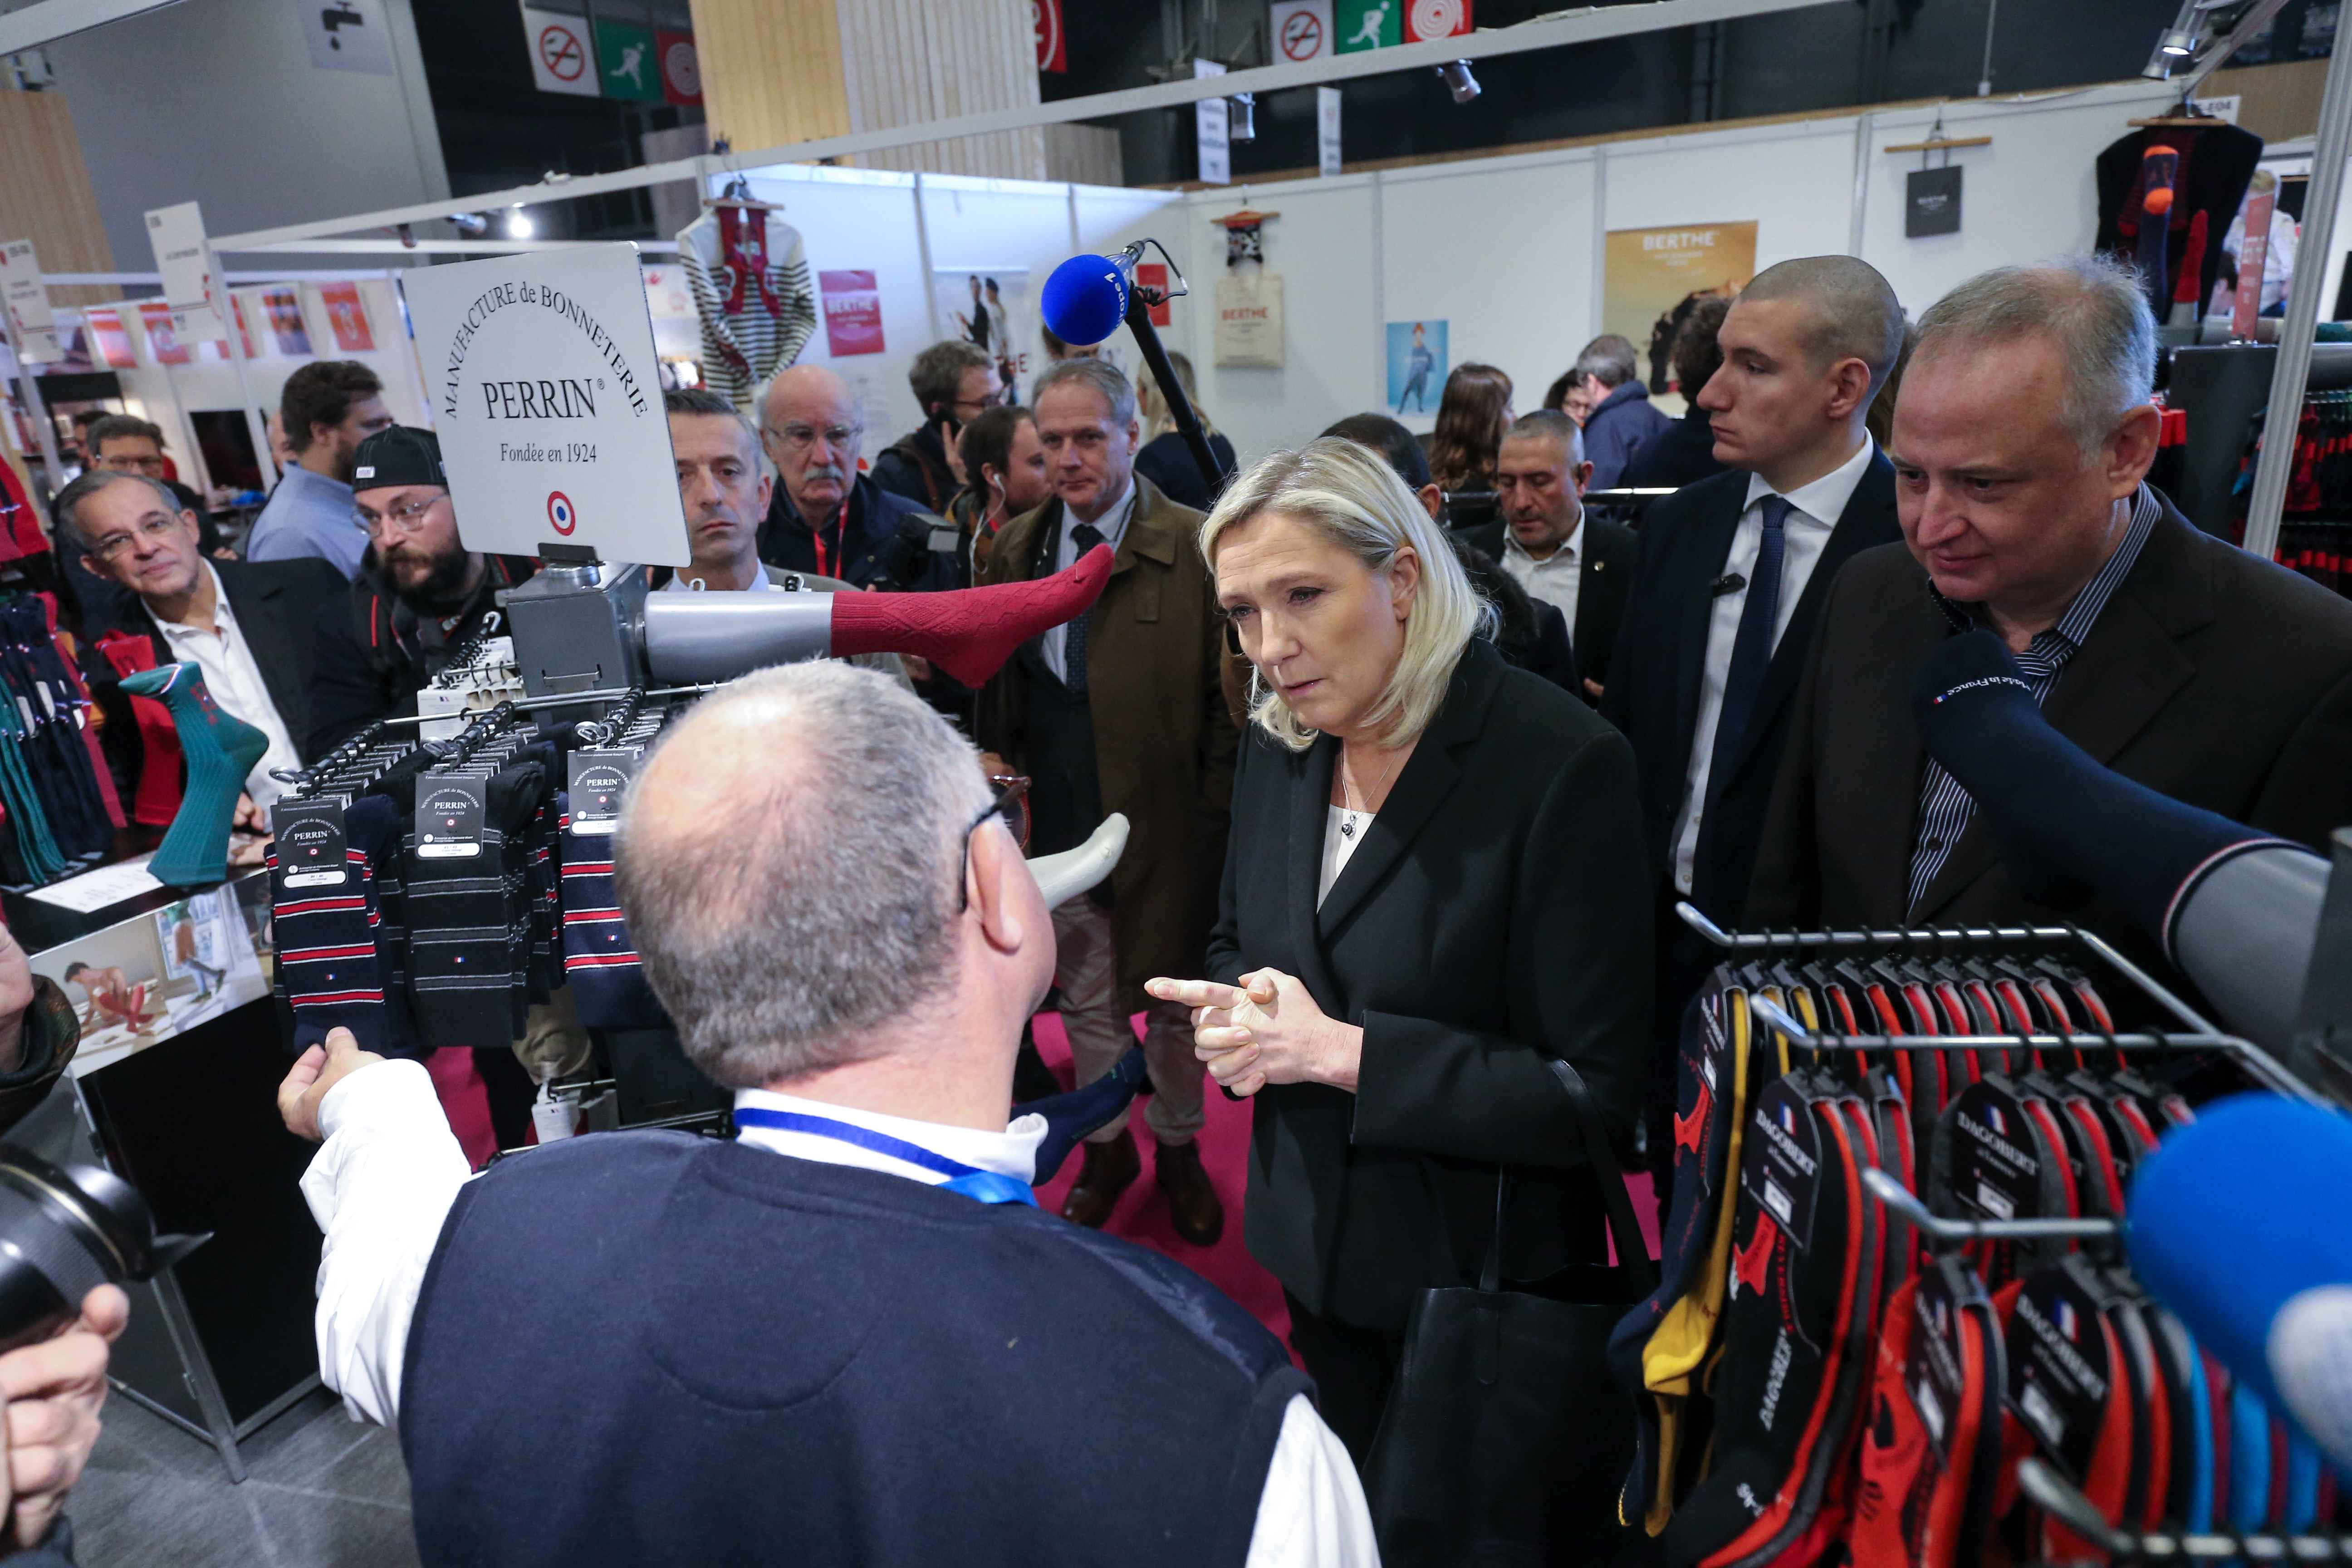 French far-right Rassemblement National (RN) party's president and MP Marine Le Pen (C) speaks with the owner of a stall as she visits the Made in France Fair, on November 9, 2019, at the Porte de Versailles, in Paris.